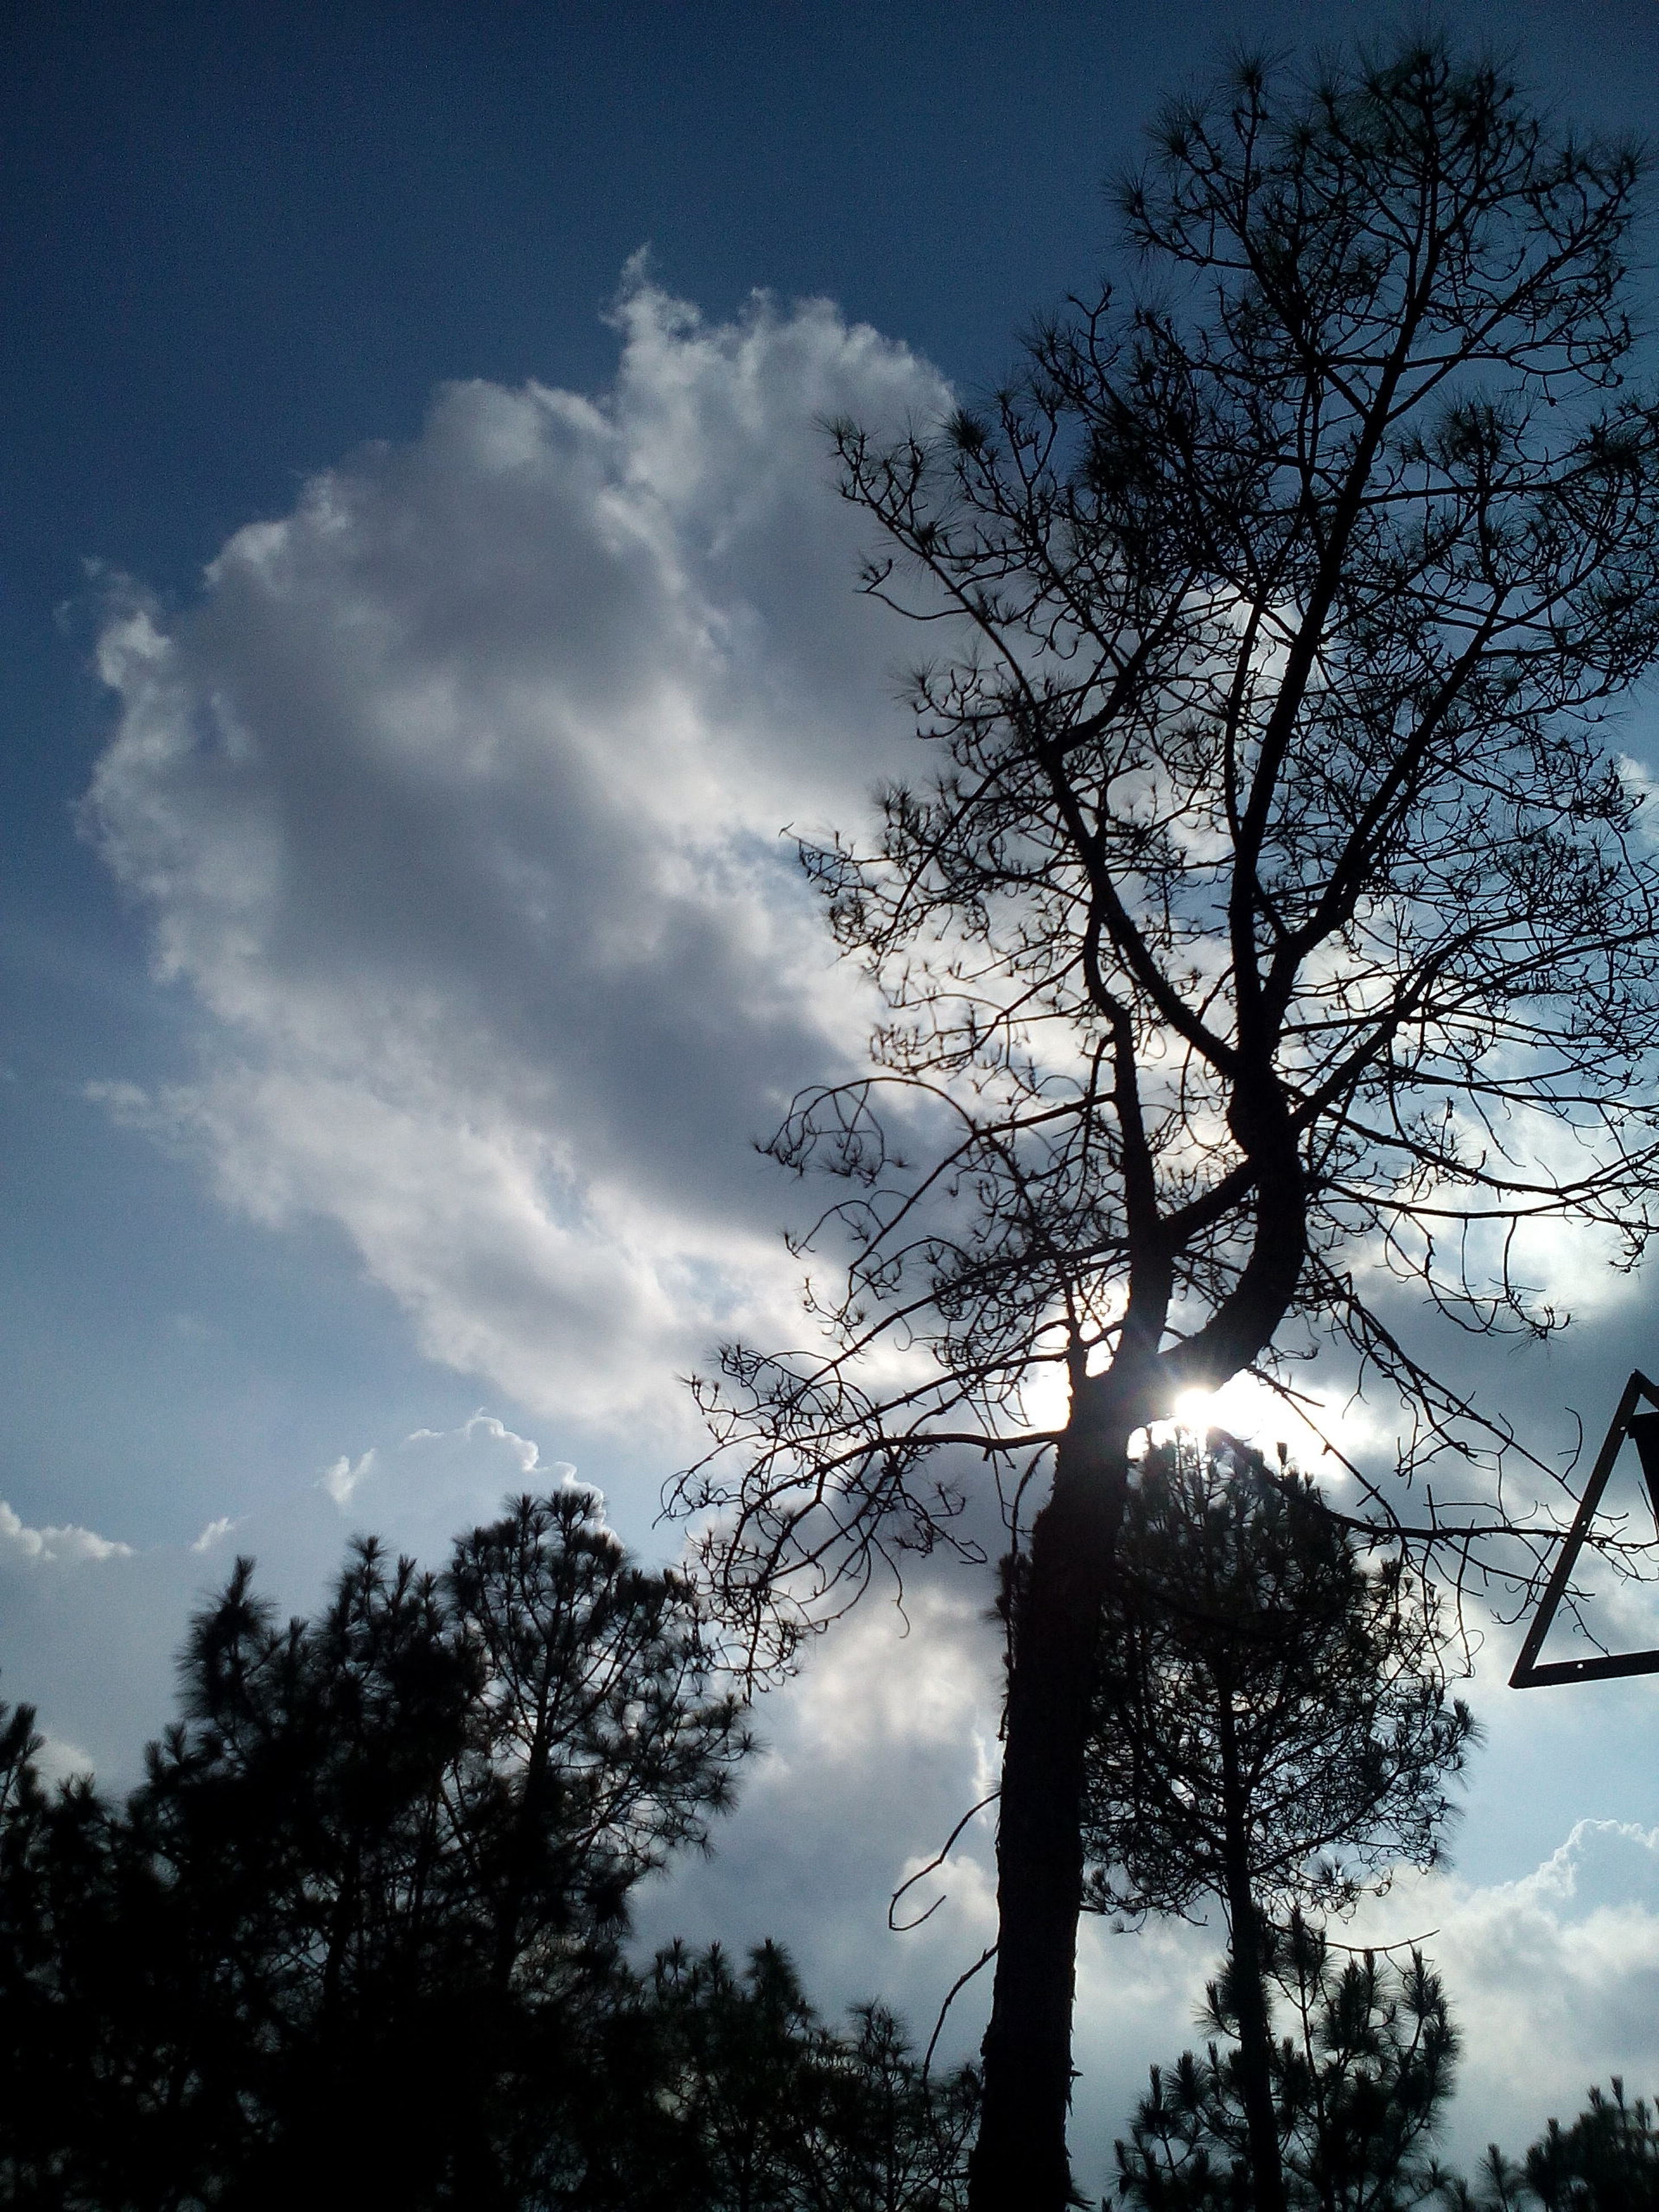 tree, sky, low angle view, nature, cloud - sky, silhouette, beauty in nature, tranquility, no people, sunset, treetop, outdoors, branch, day, star - space